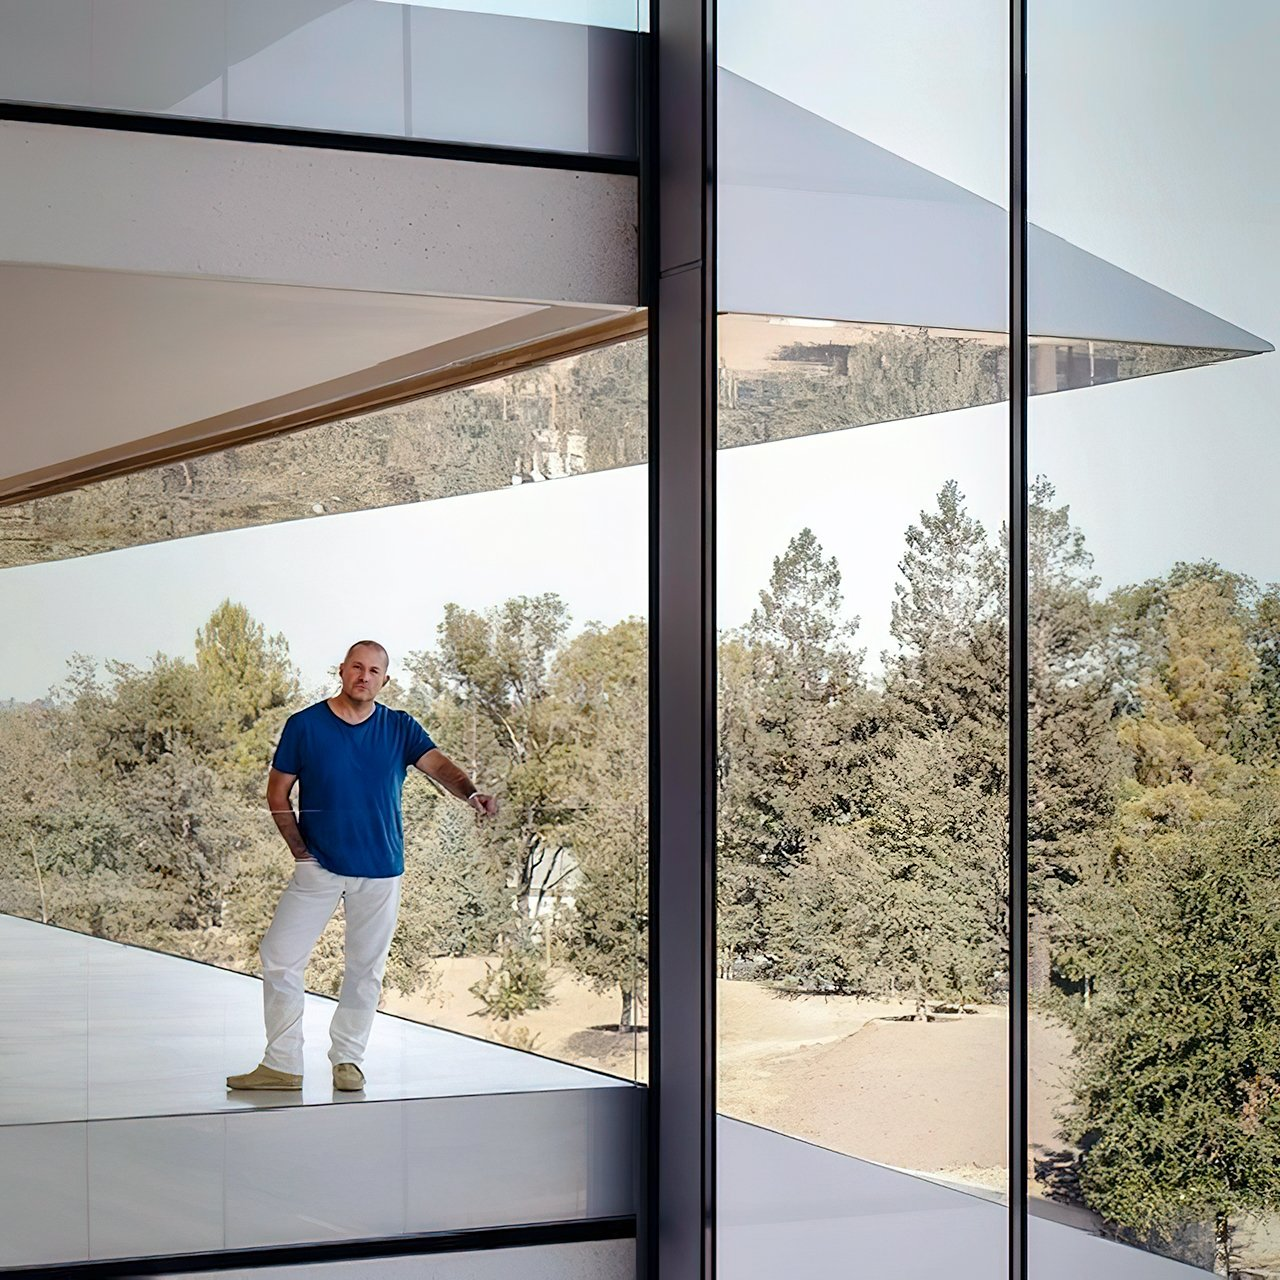 Jony Ive's attention to detail is felt through the campus